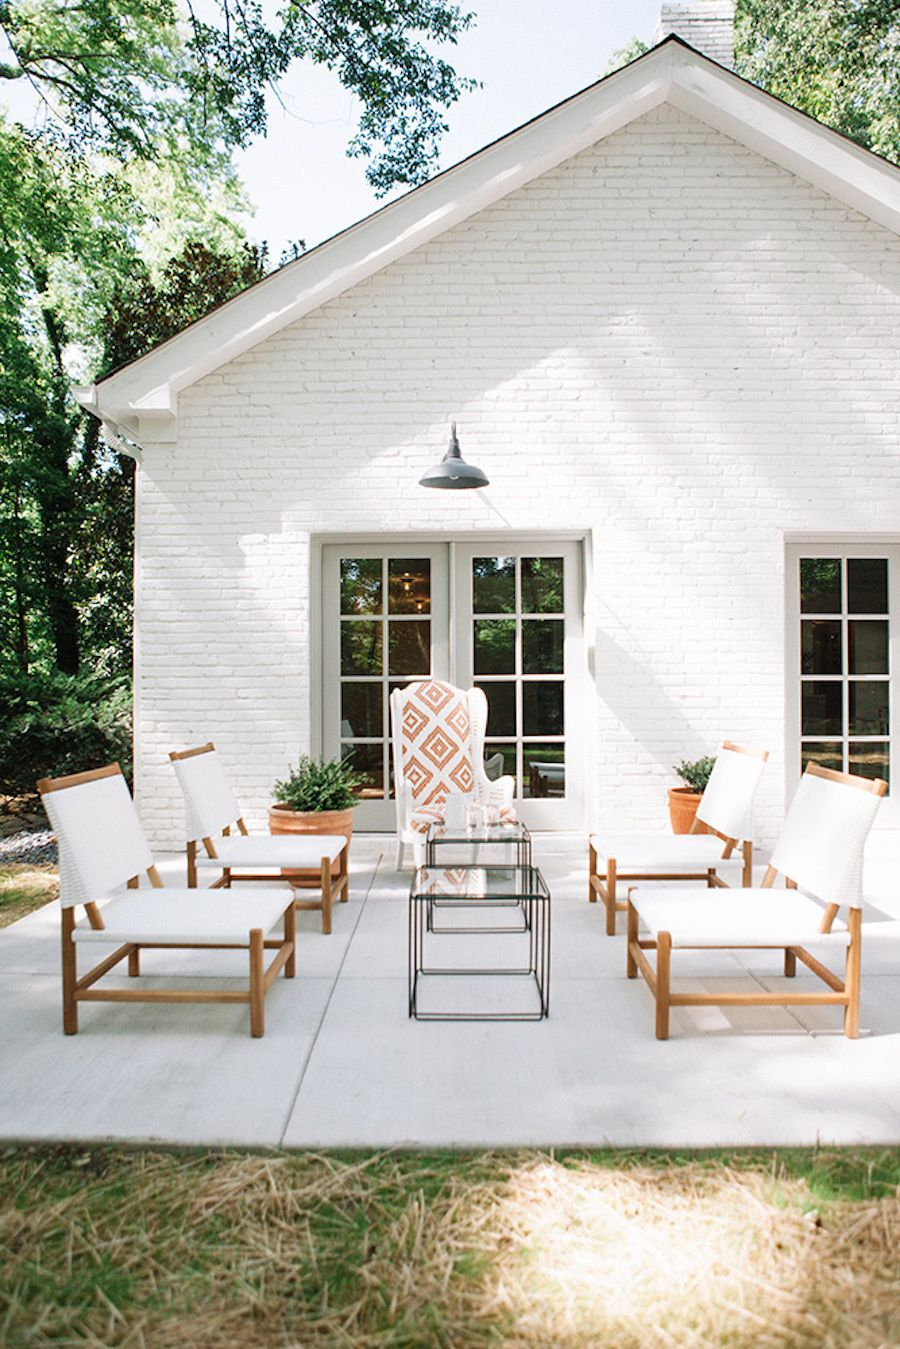 Outdoor paint colors white and teak furniture outdoors white brick